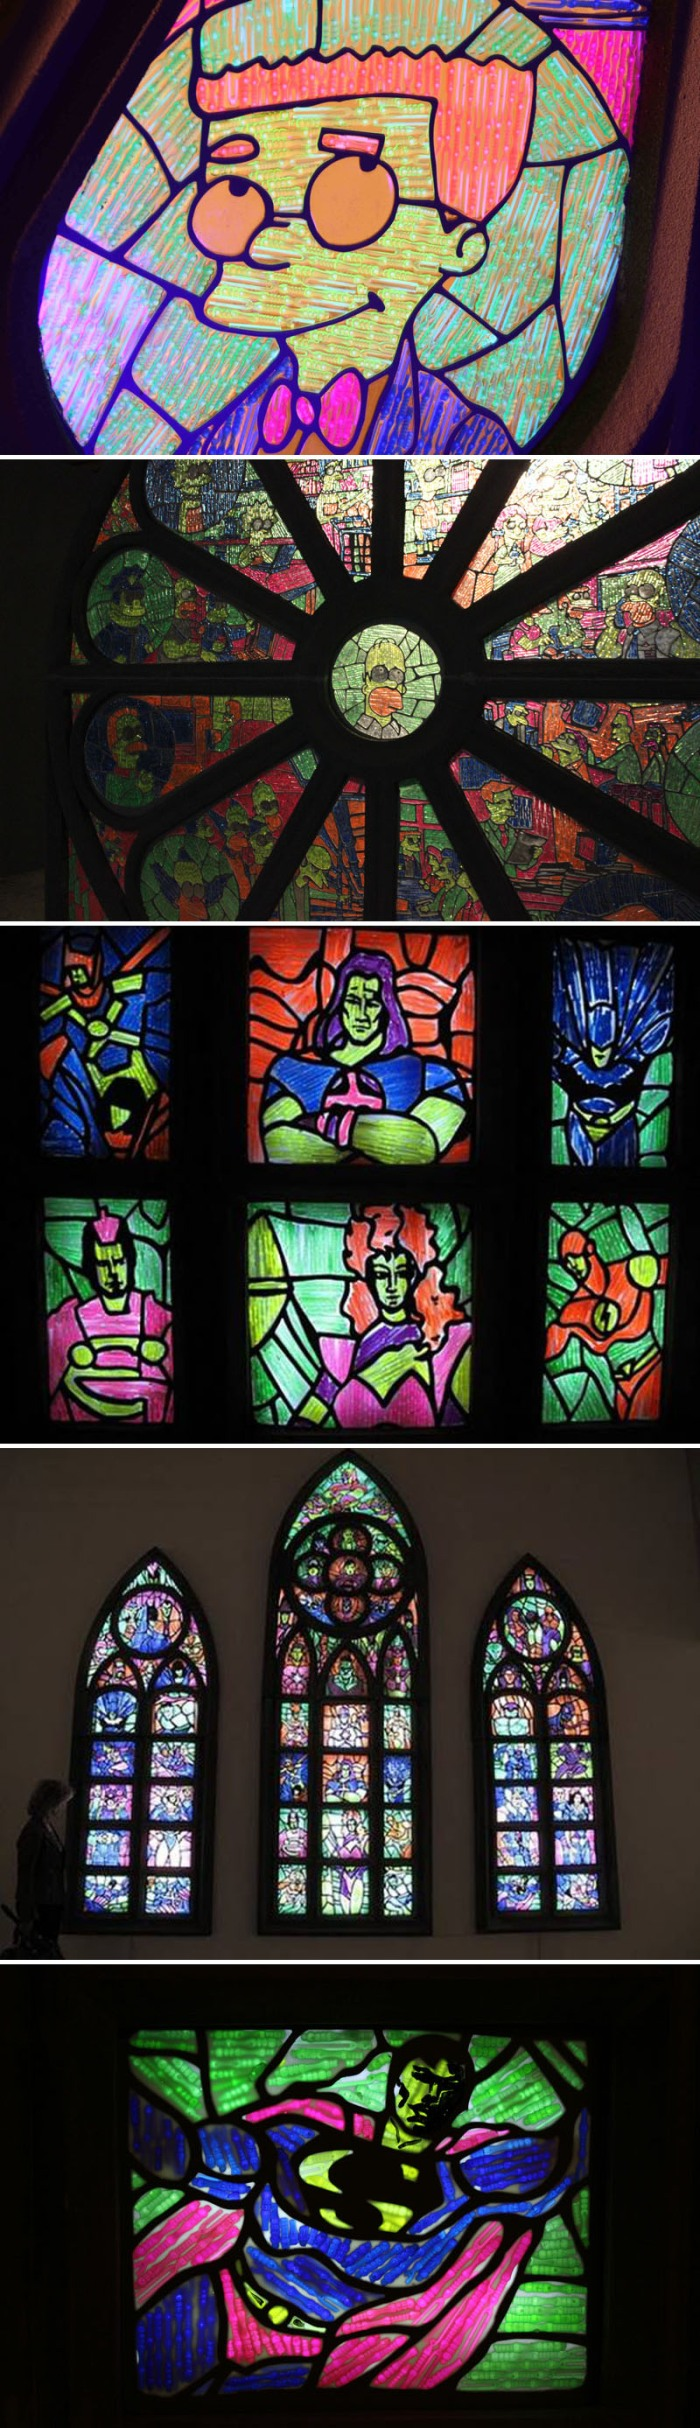 Contemporary Russian Art, Recycle Group, The Simpsons, Stained Glass, Superheroes Stained Glass, Andrey Blohin and Egor Kuznecov